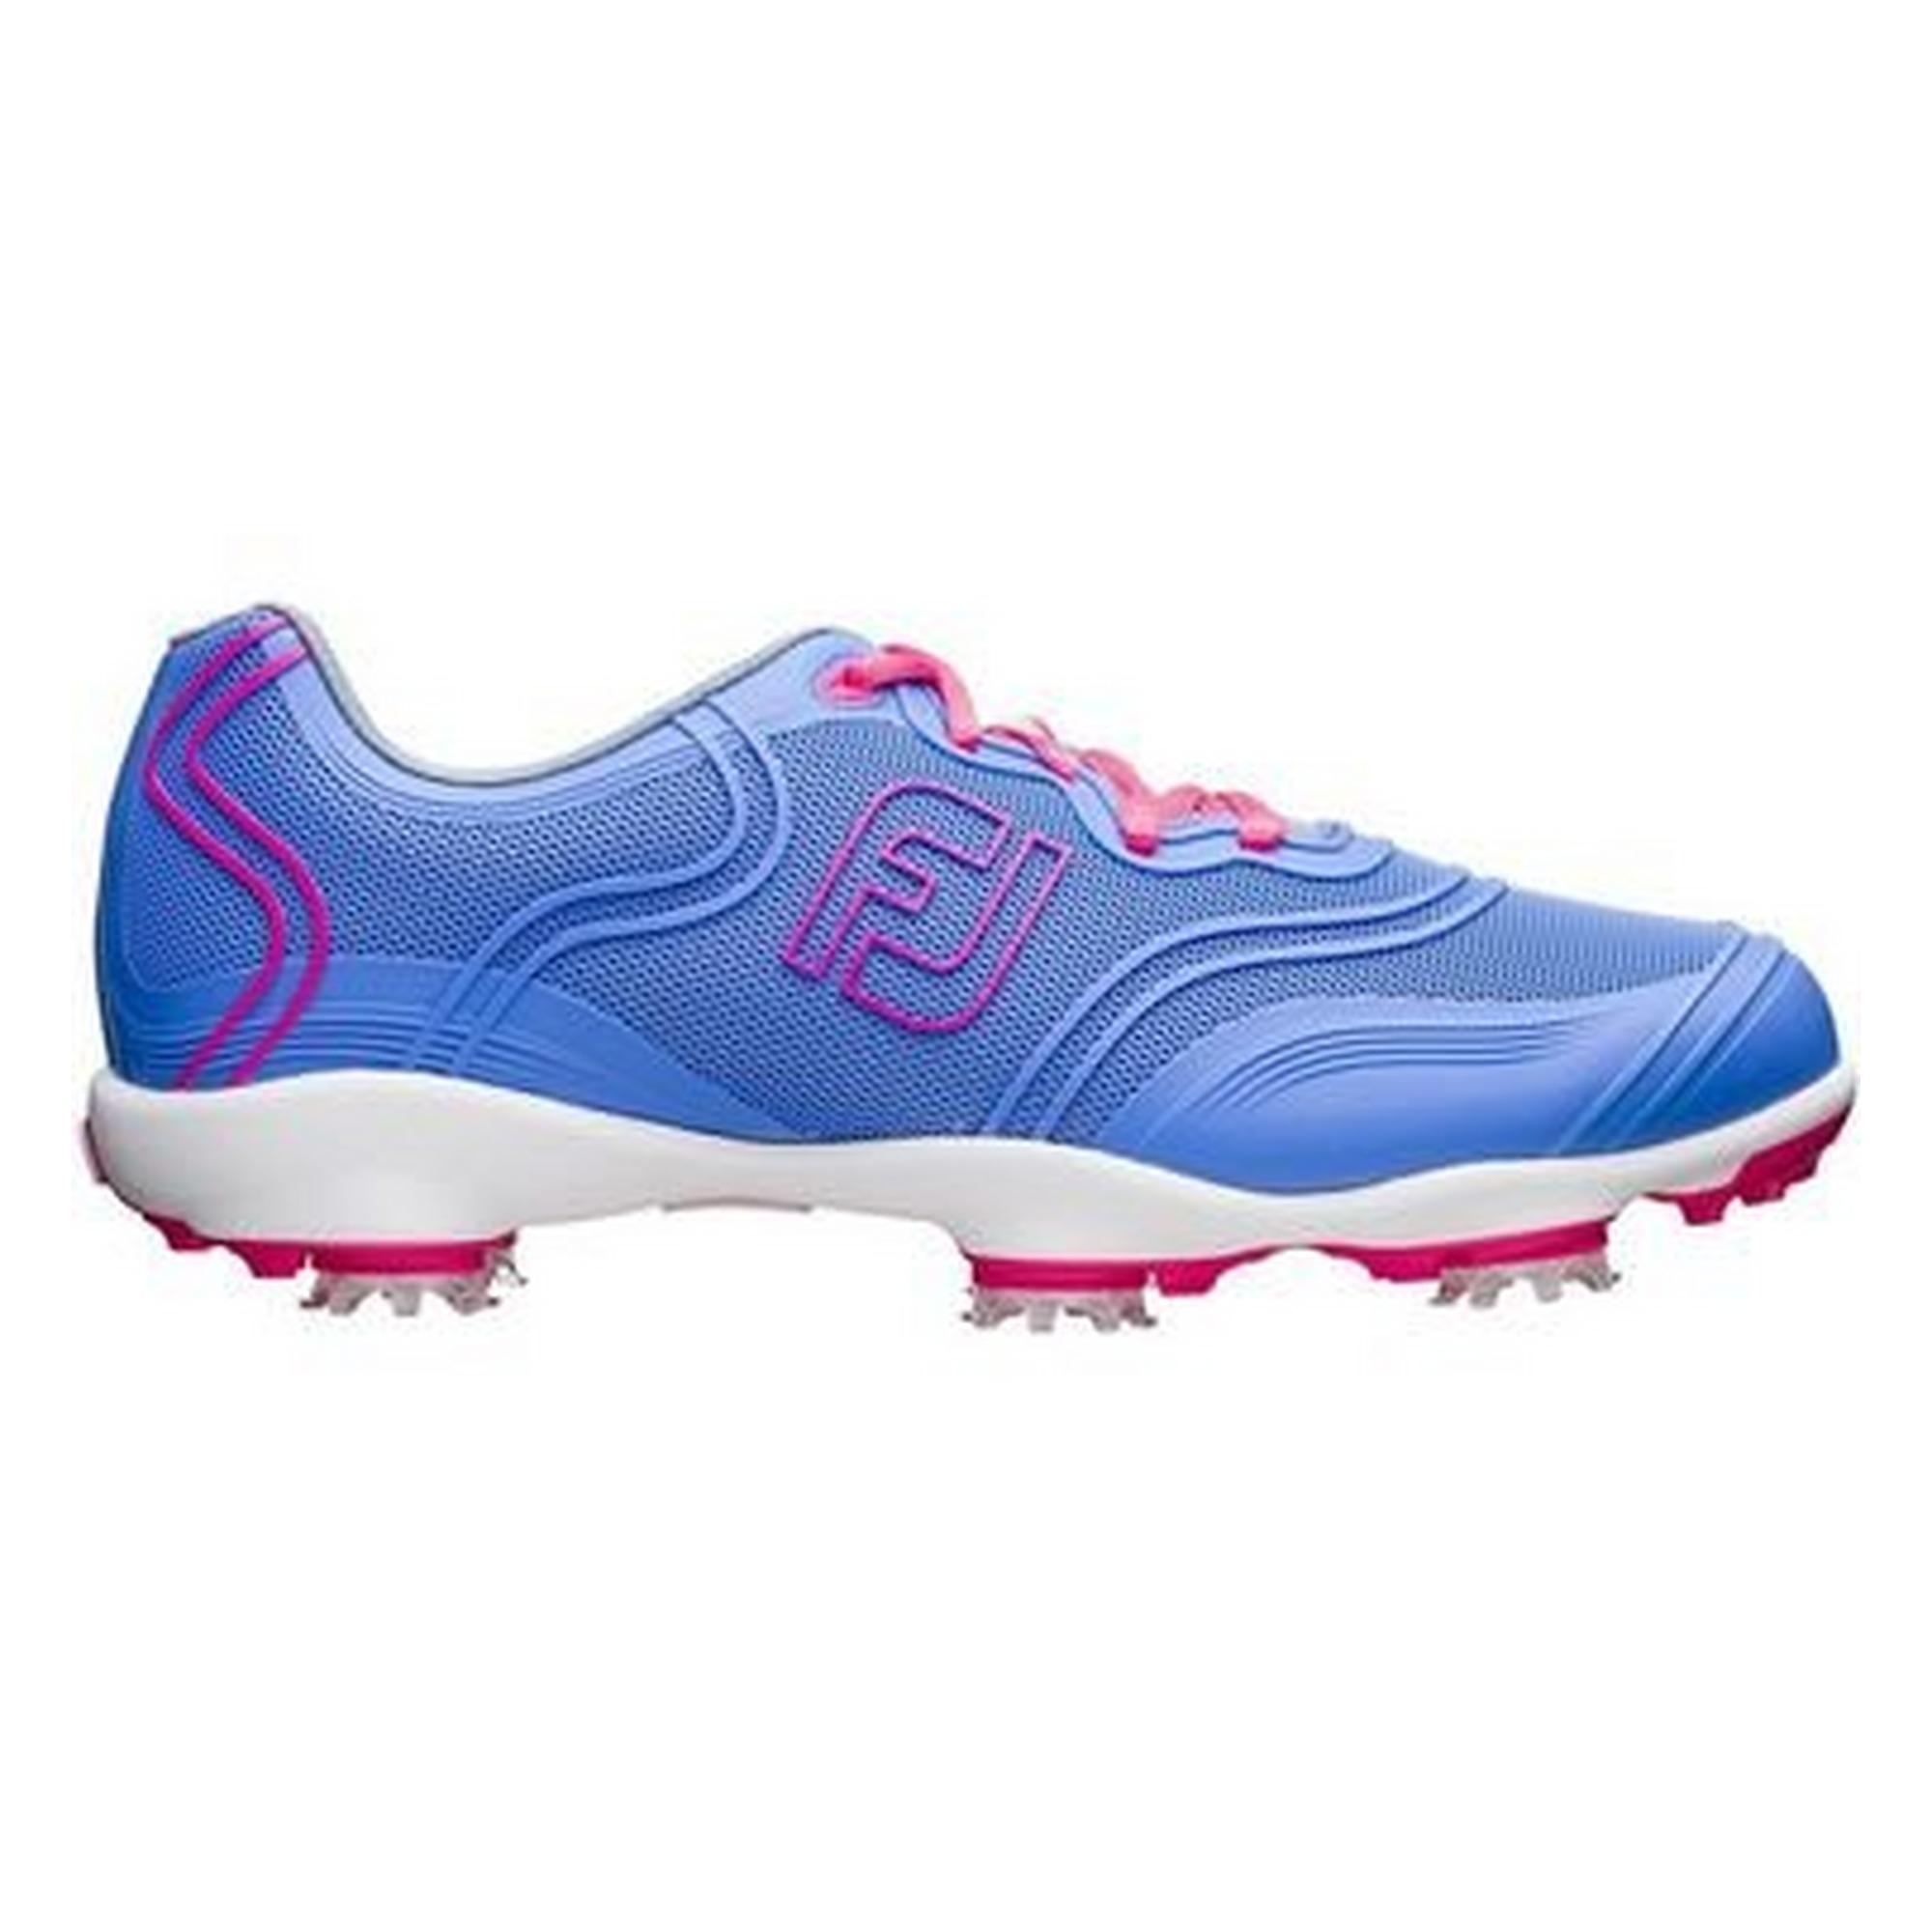 Women's Aspire Spiked Golf Shoe-Periwinkle